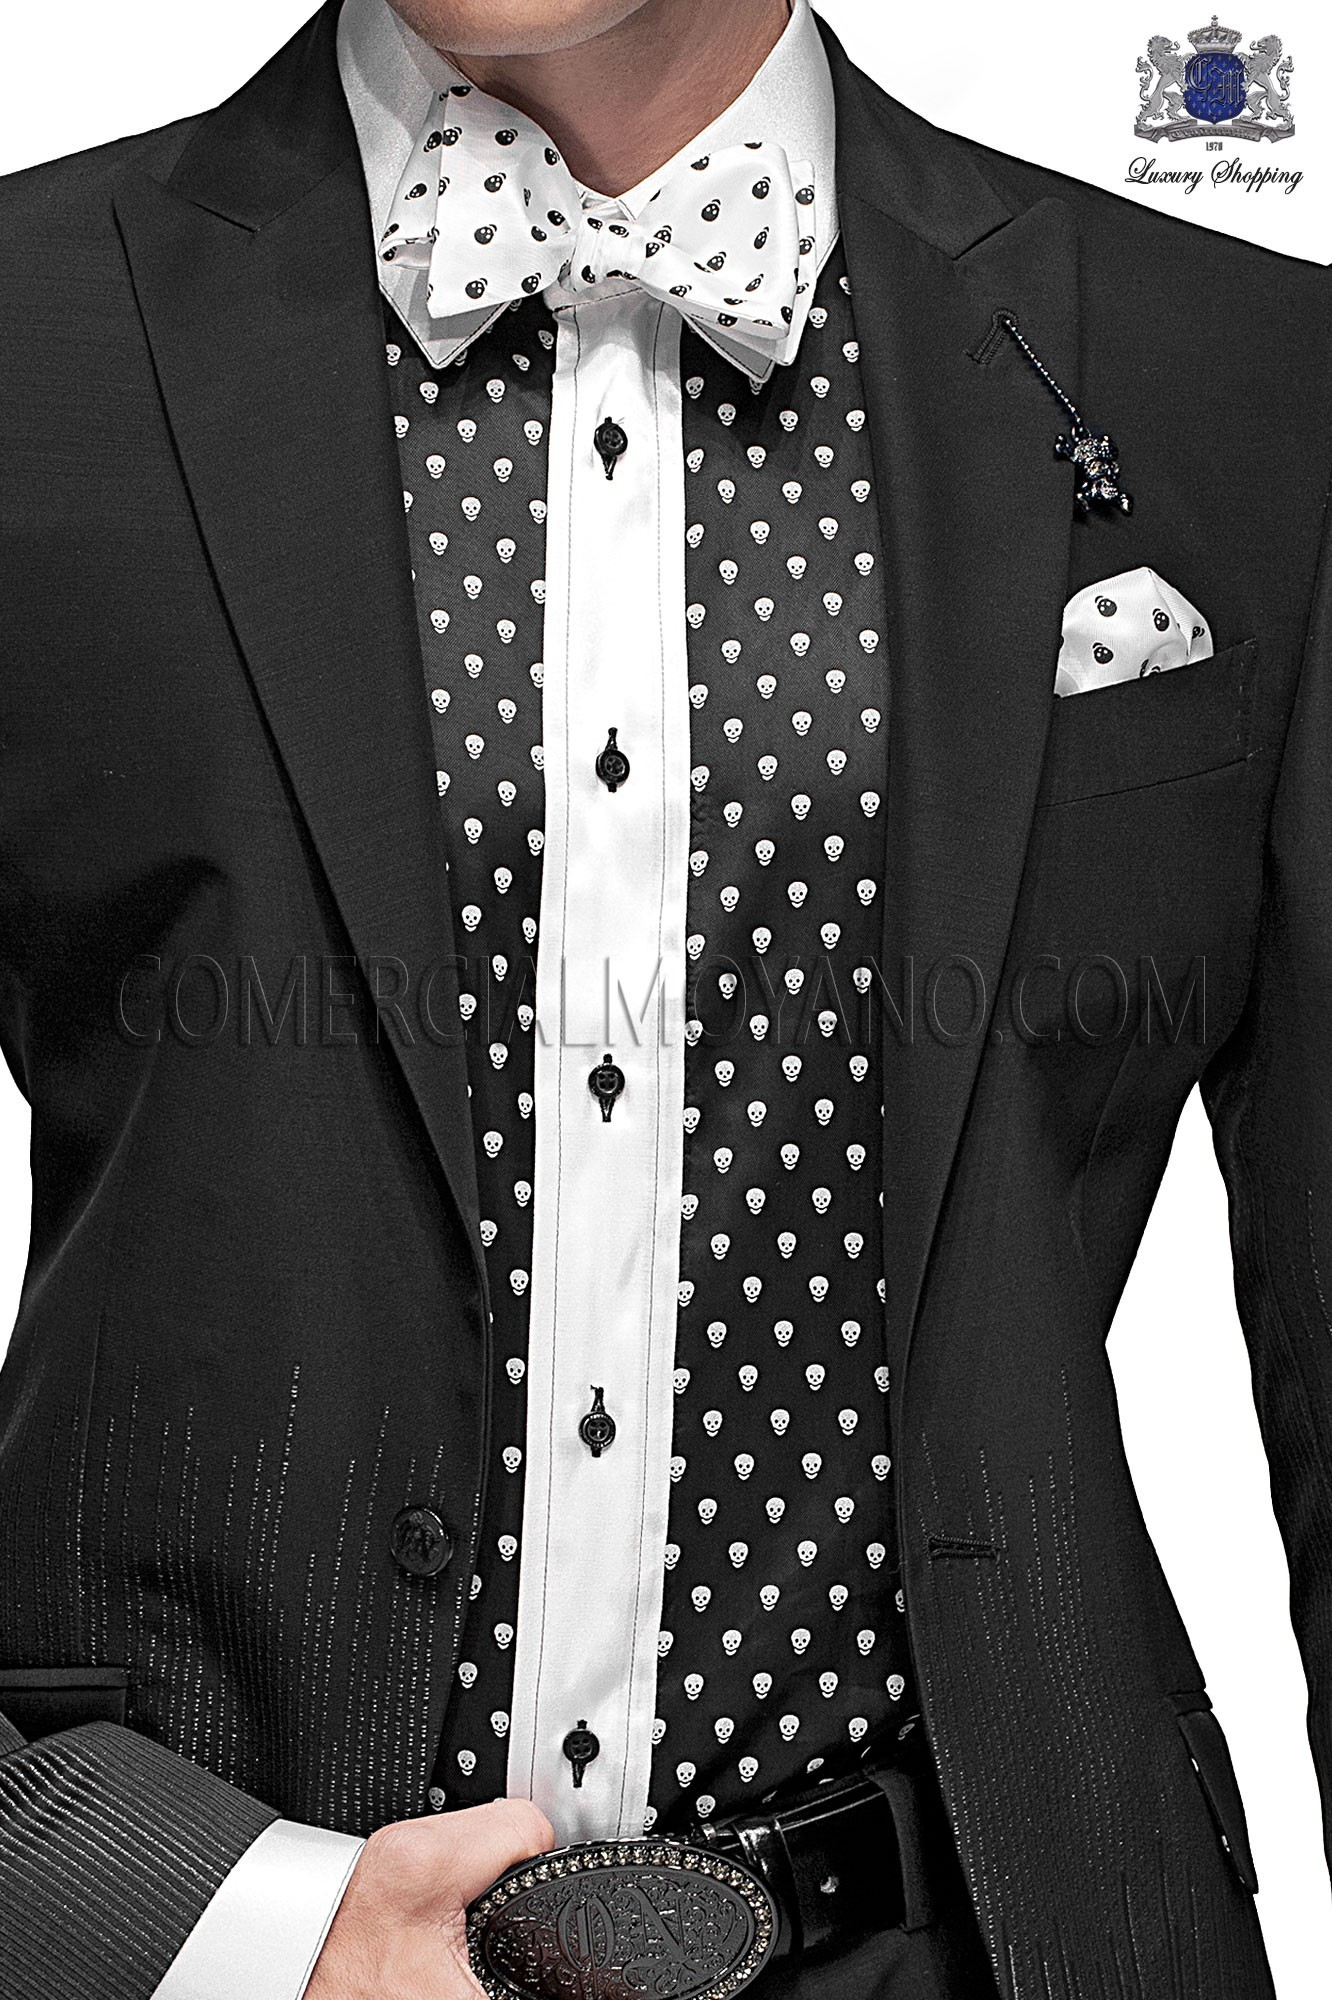 Italian emotion black men wedding suit, model: 60766 Ottavio Nuccio Gala 2017 Emotion Collection